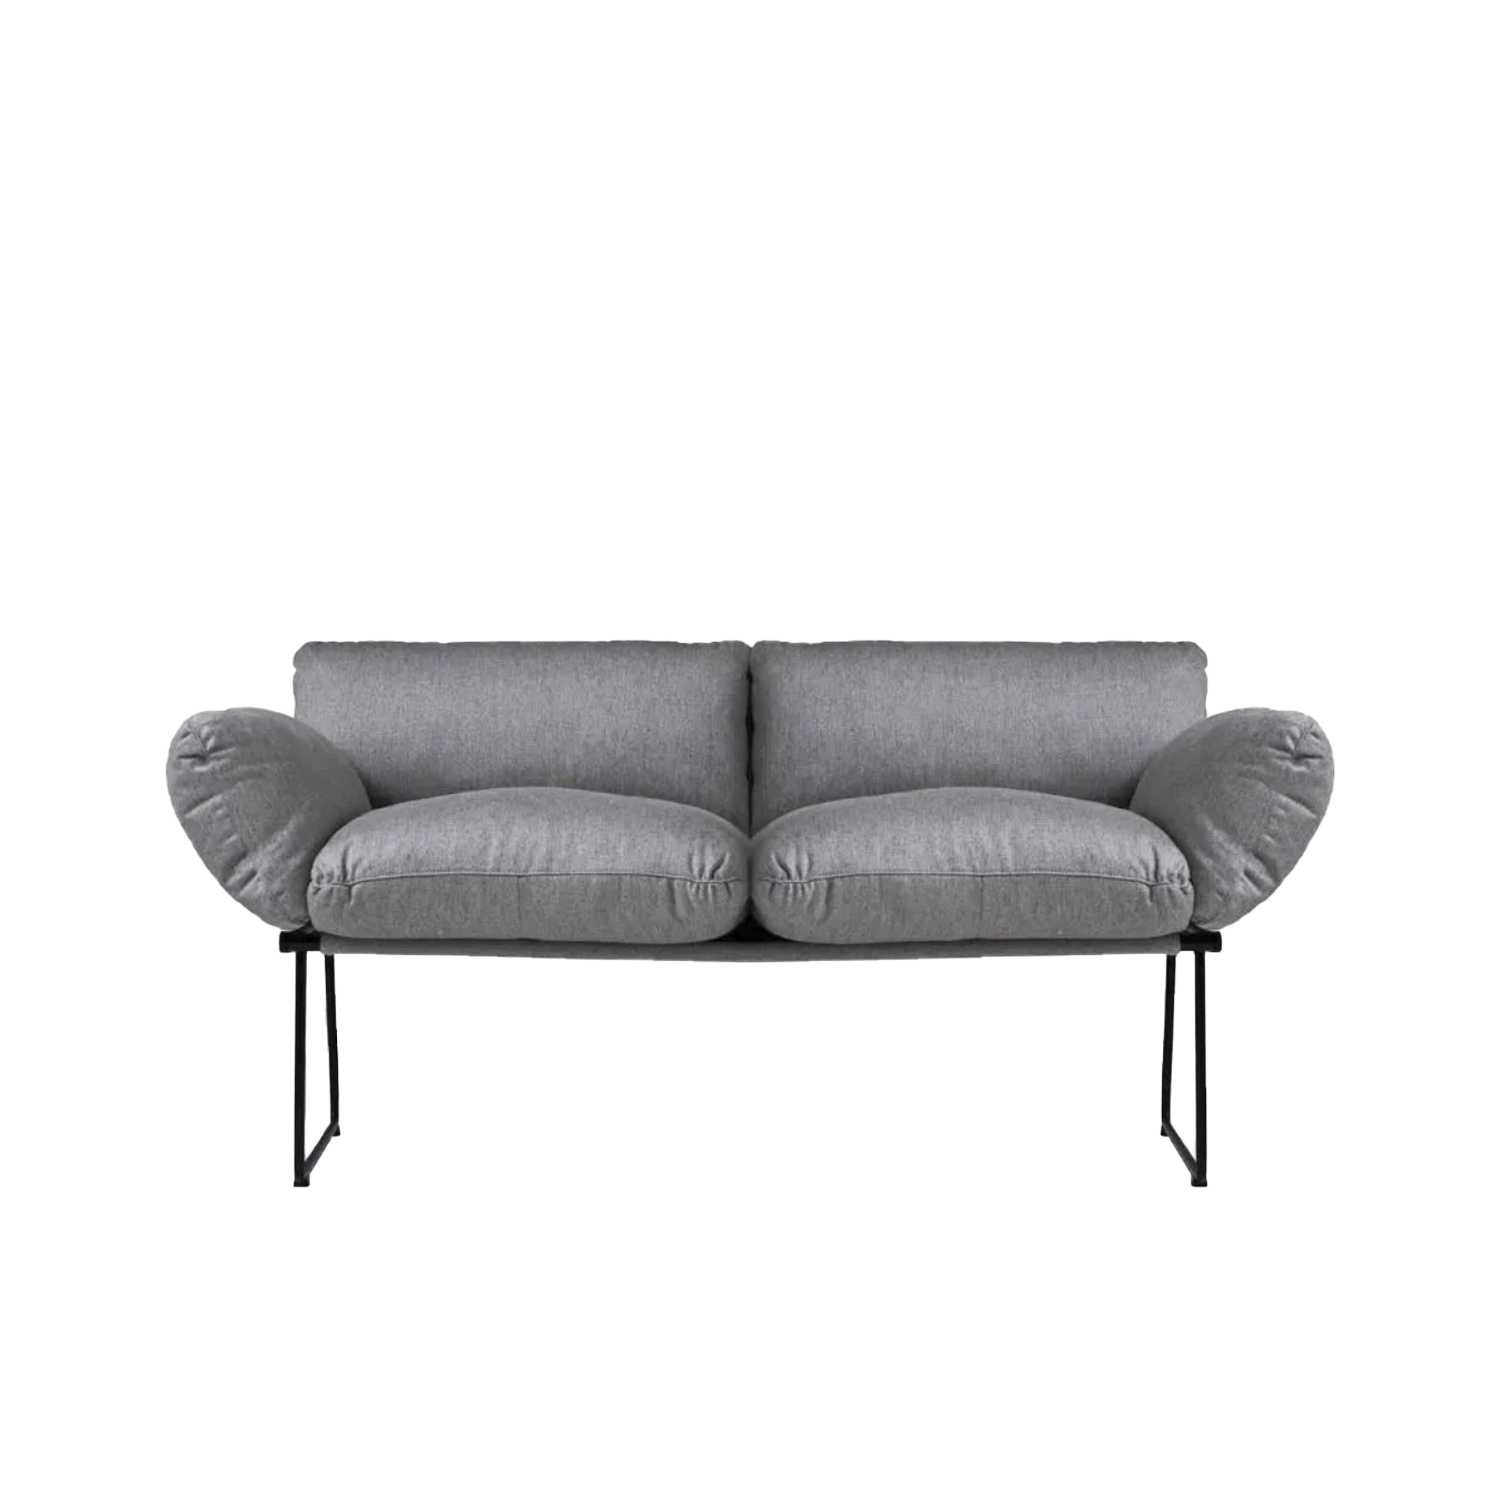 Elisa Outdoor Two Seater Sofa - Synthesis of lightness and comfort, with a minimal and elegant design. From a project designed by Enzo Mari for Driade, Elisa is a collection of sofas and armchairs with a thin structure, in contrast with the soft volume of the cushions. Extremely comfortable thanks to the large and generous shapes of the polyurethane foam cushions, the Elisa sofa and armchair are characterized by the essential design of the base, a slender steel structure with sled supports that makes the whole elegant and light. Beautiful furnishing accessories which, thanks to the simplicity of their line, are refined and sophisticated. The sofa is proposed in the two dimensional variant with two and three seats and with covering to choose from in a wide range of colors. Available in indoor and outdoor versions. | Matter of Stuff